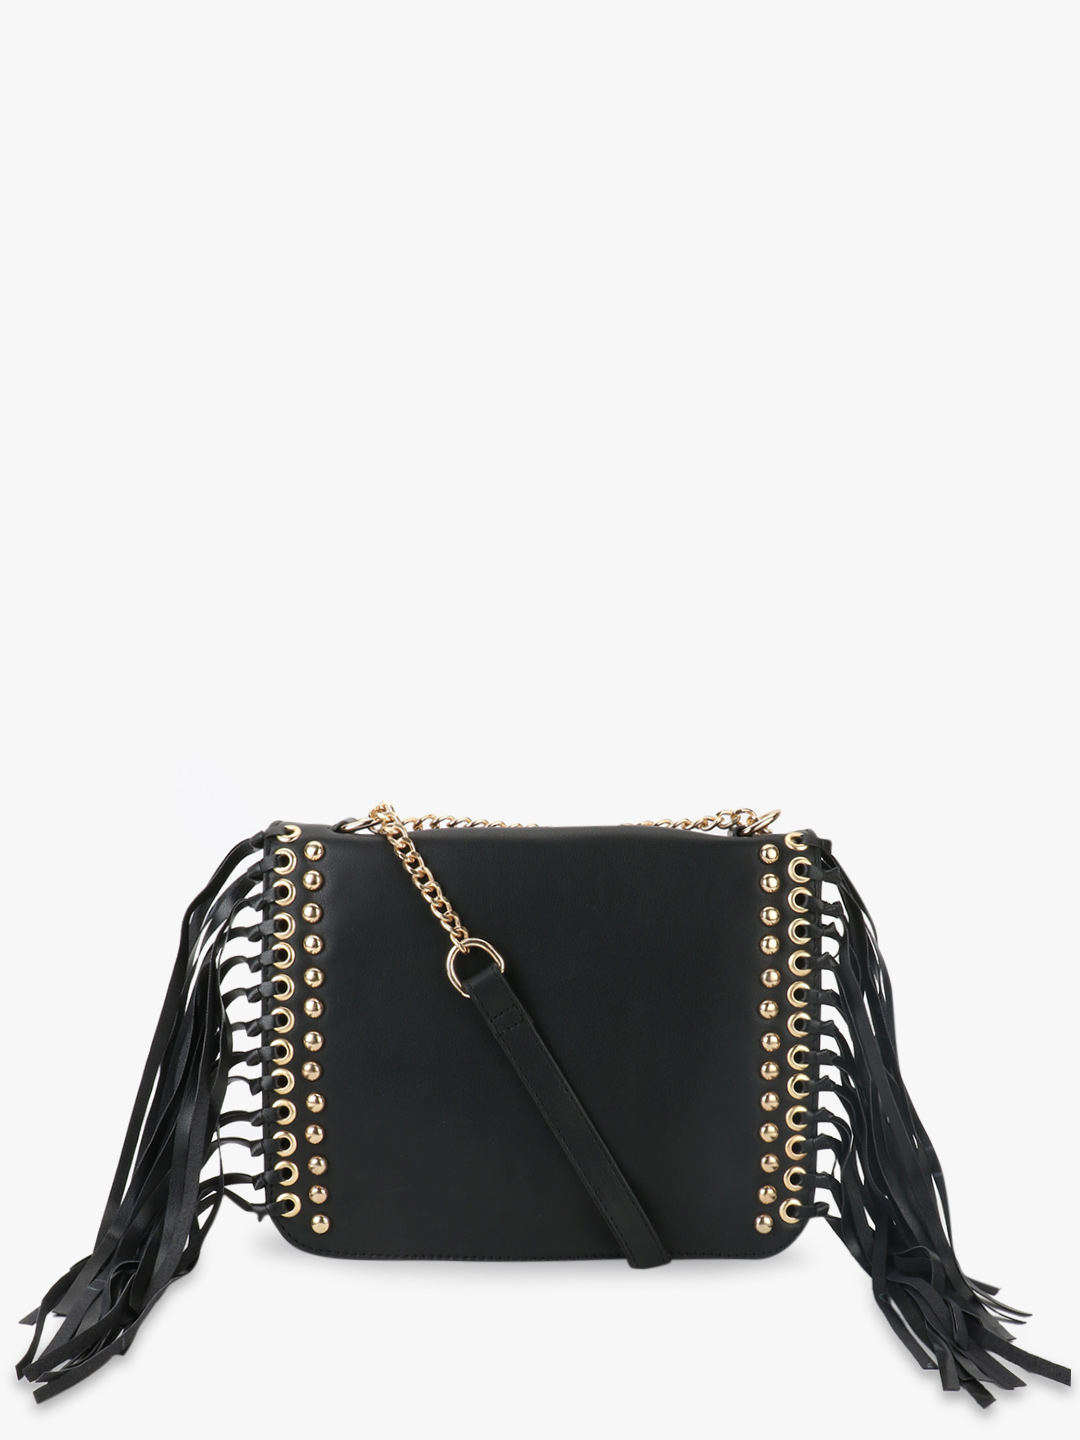 Paris Belle Black Slingbag With Stud And Fringe Details 1